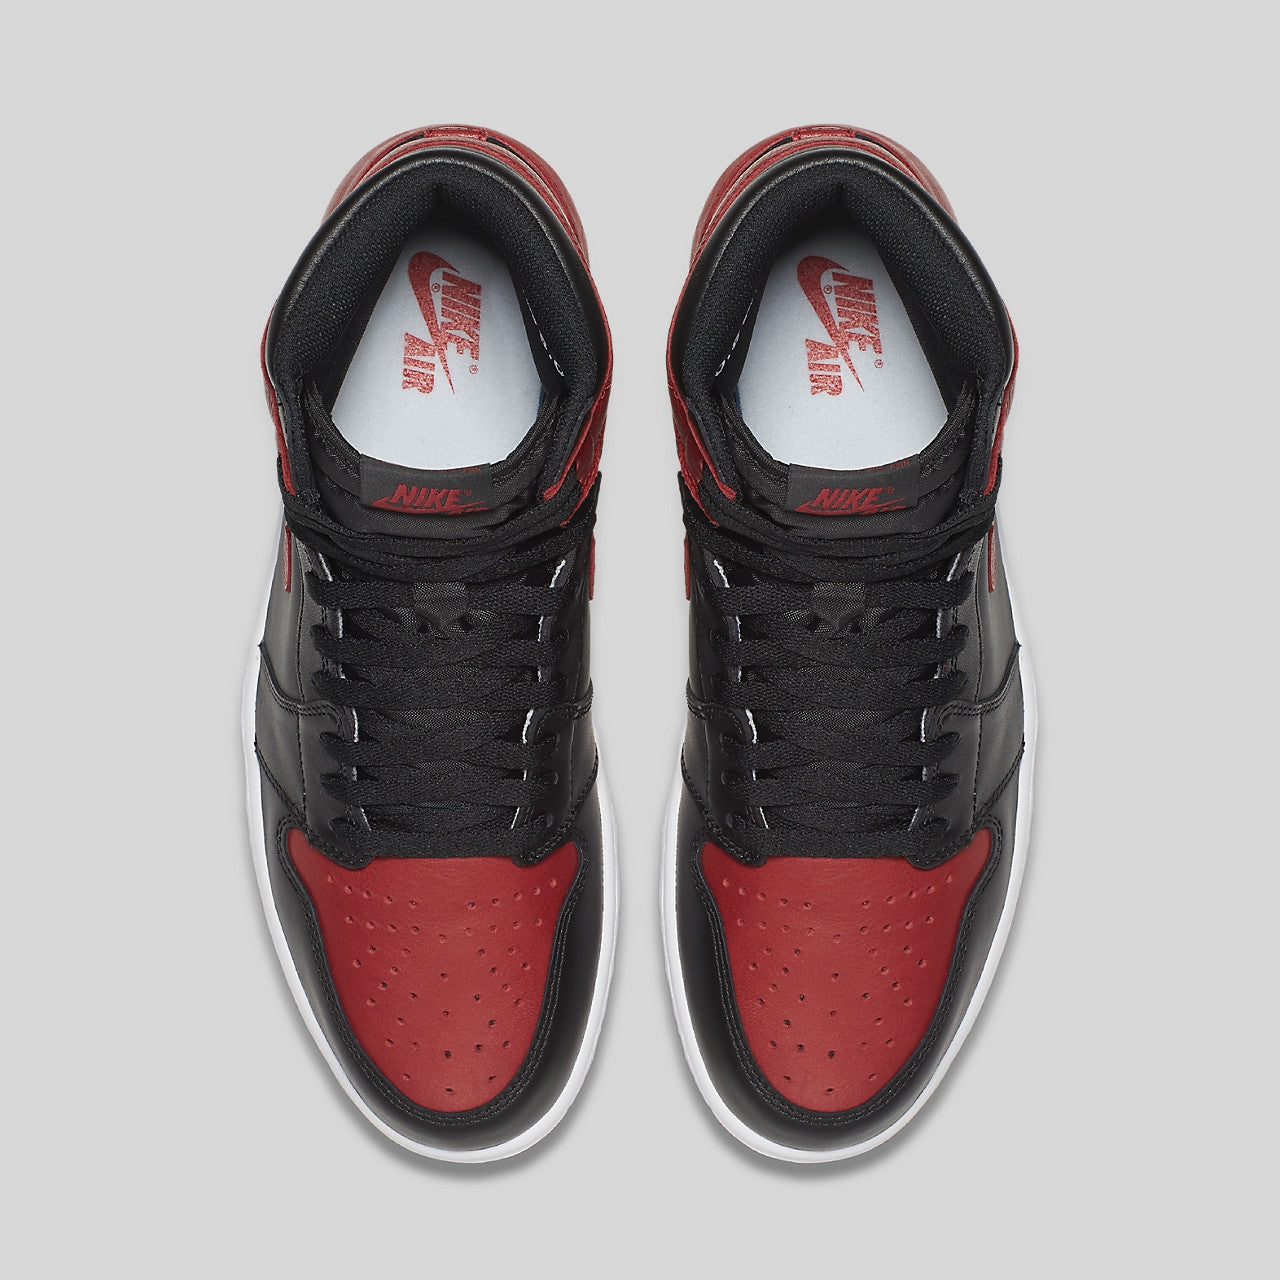 Nike Air Jordan 1 Retro High OG Banned Bred (555088-001)  6efaa2a1272b